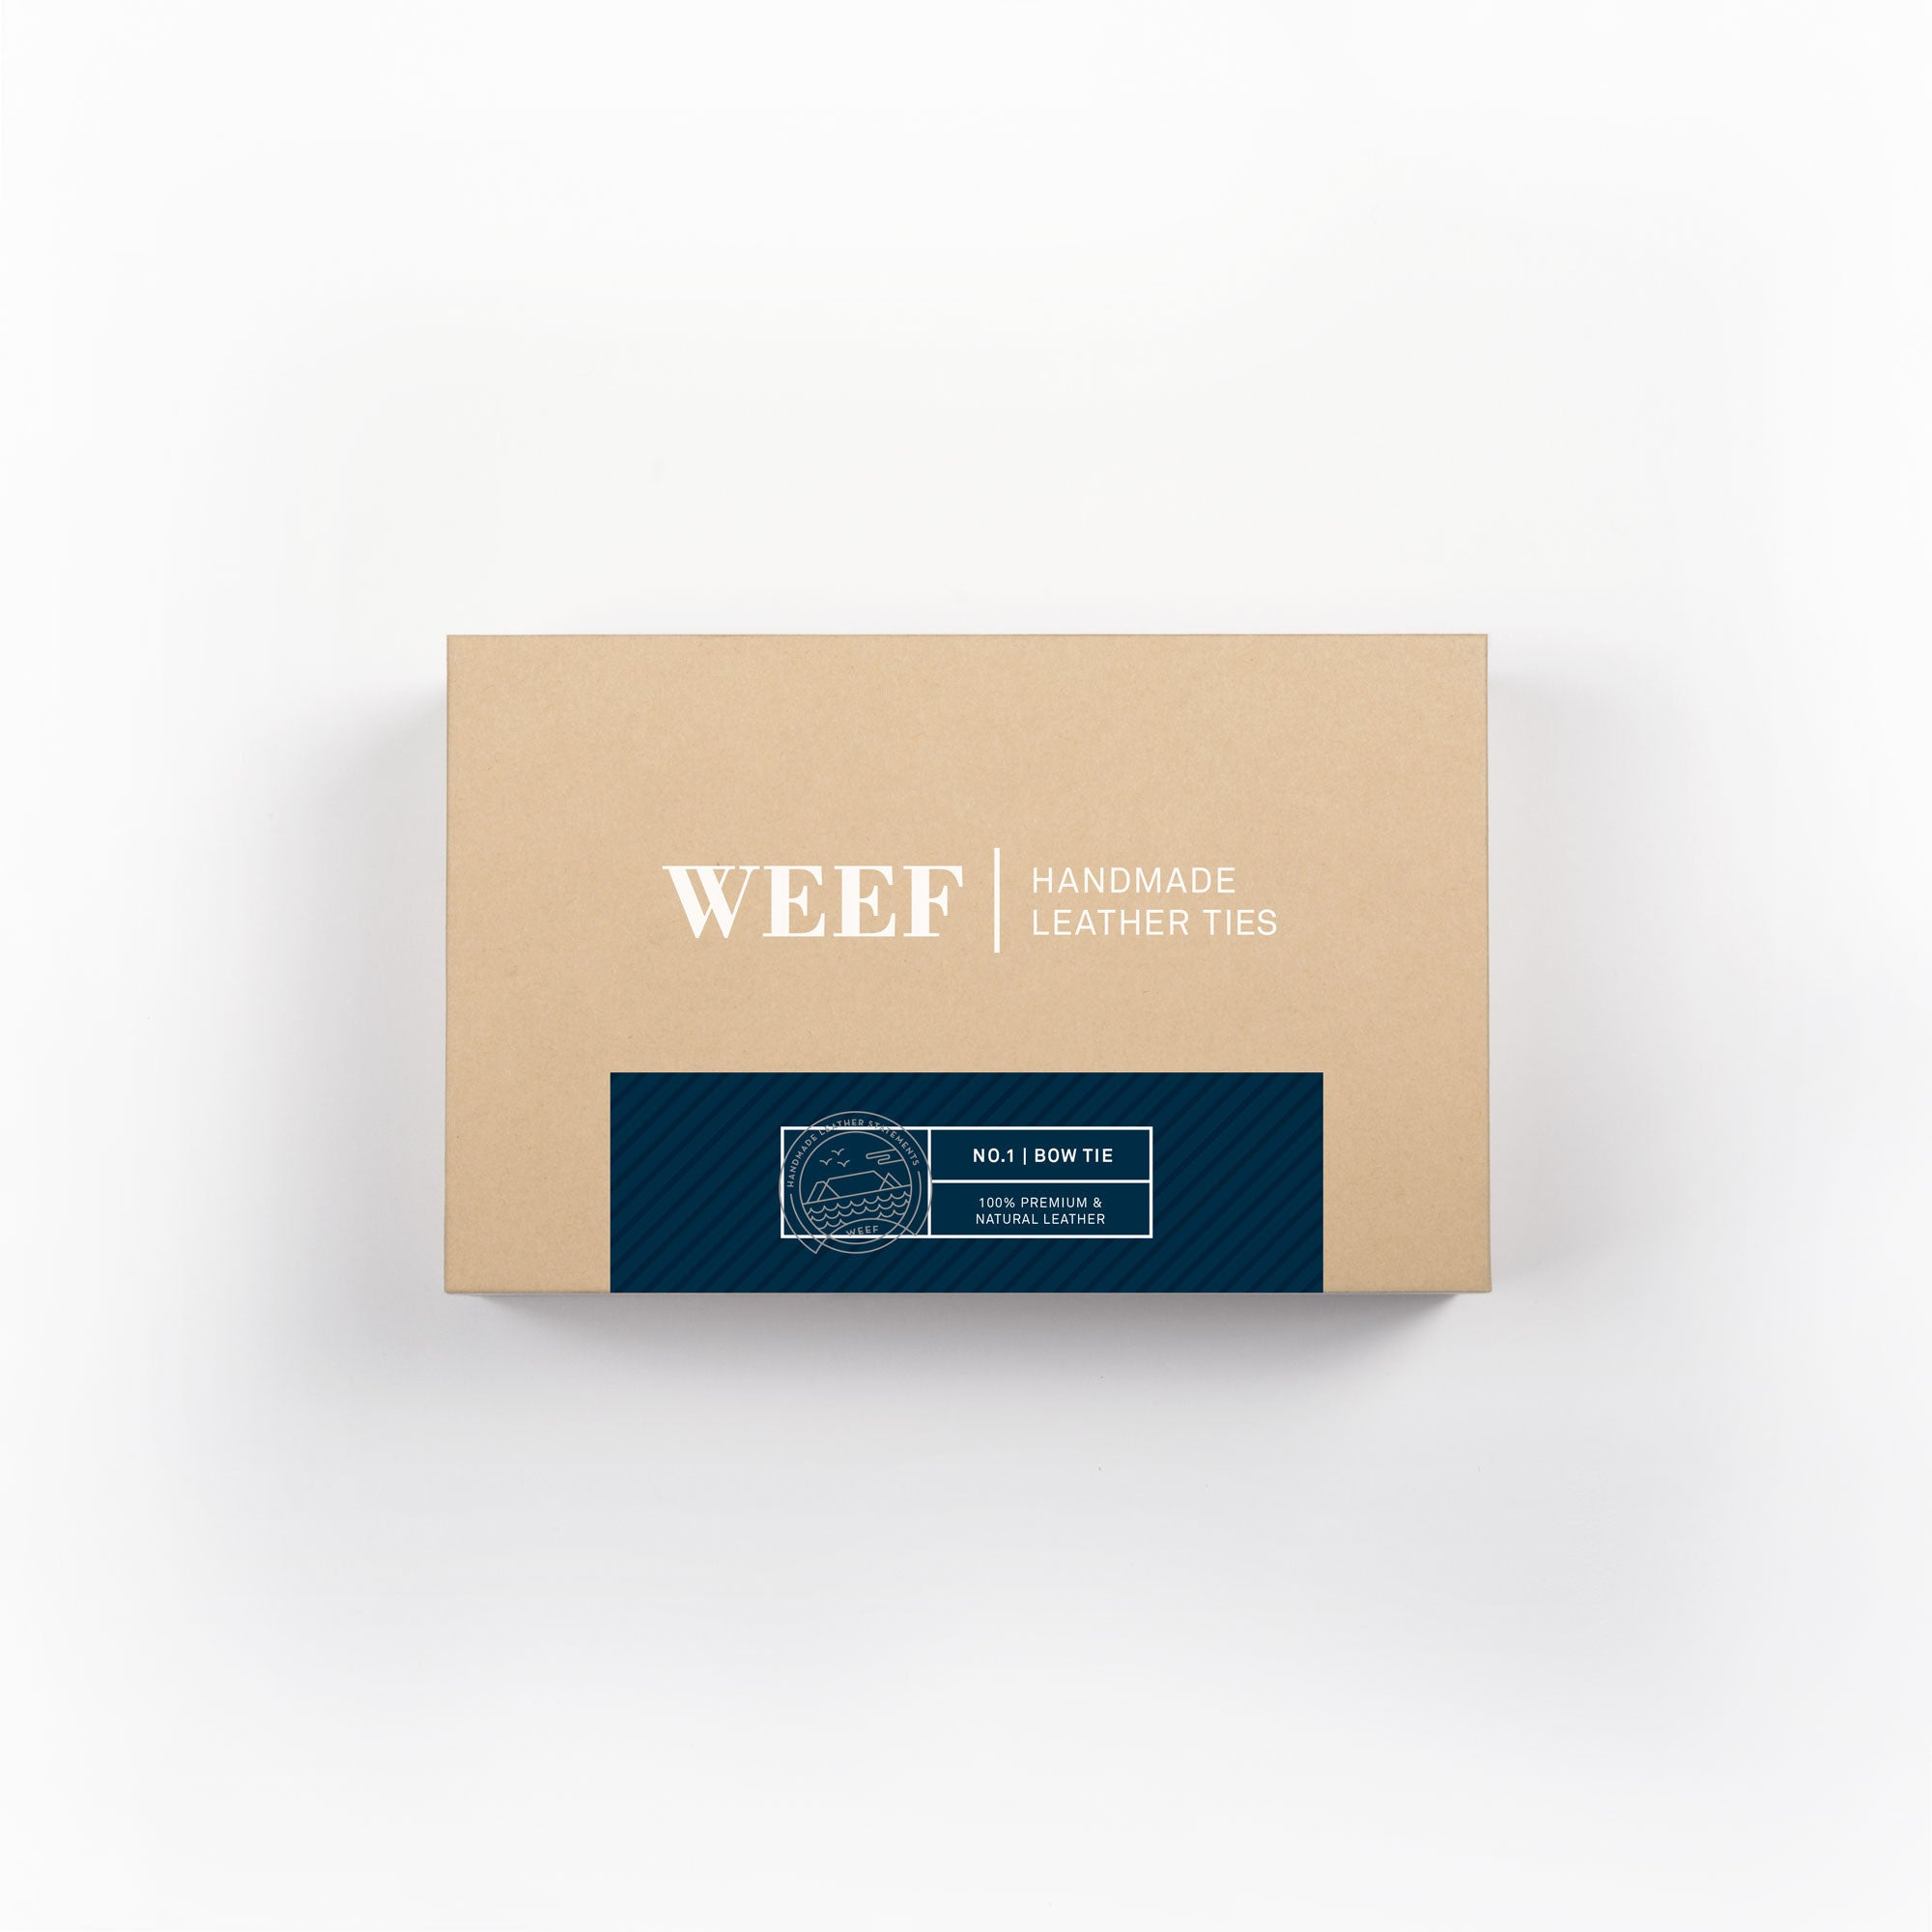 This is the premium packaging box of the deep navy WEEF handmade leather bow tie.